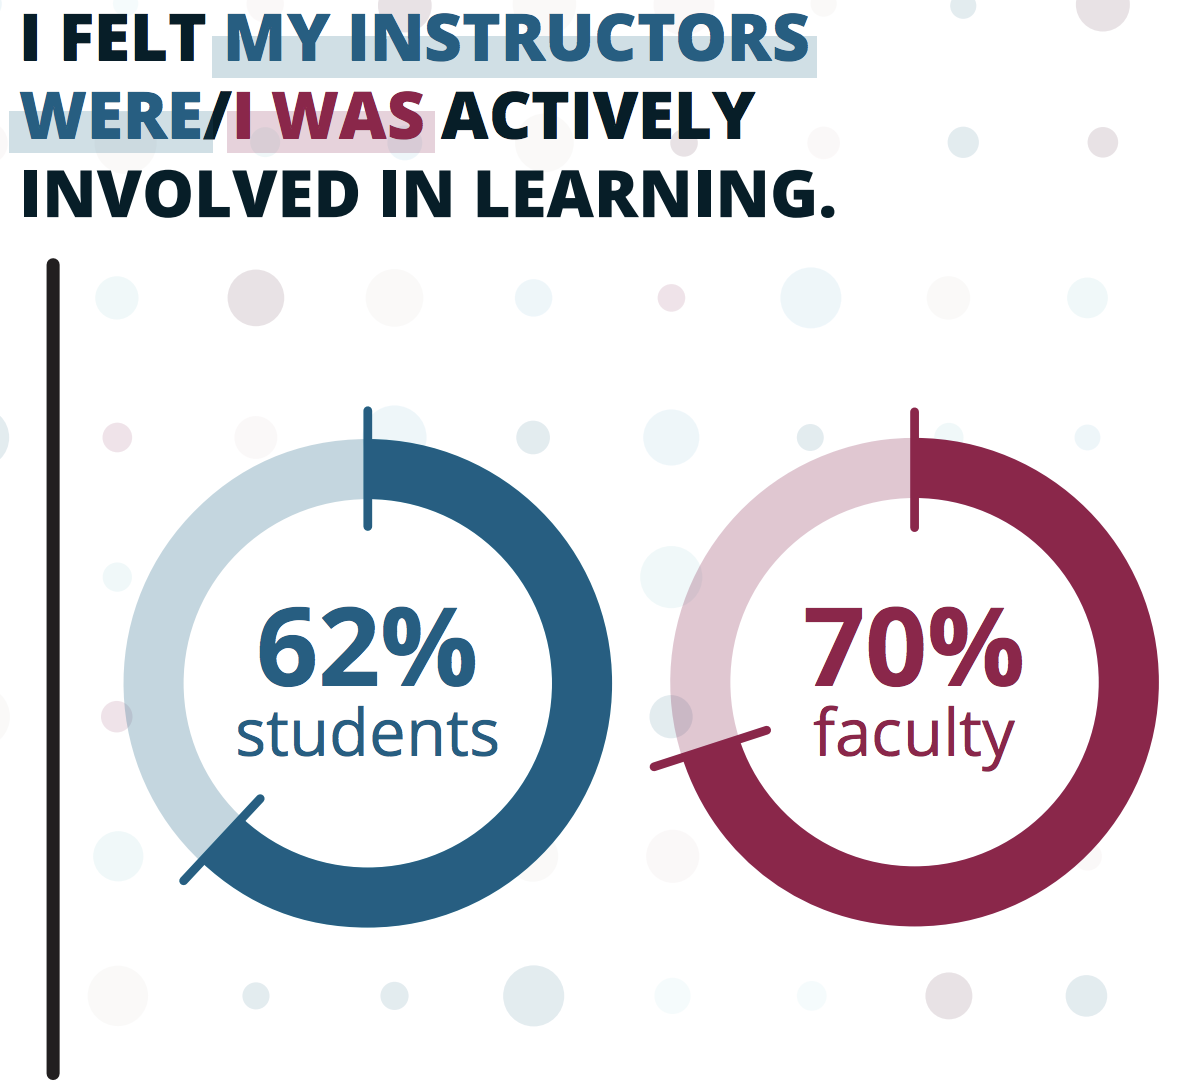 chart - 62% of students and 70% of teachers felt teachers were actively involved in spring 2020 remote courses